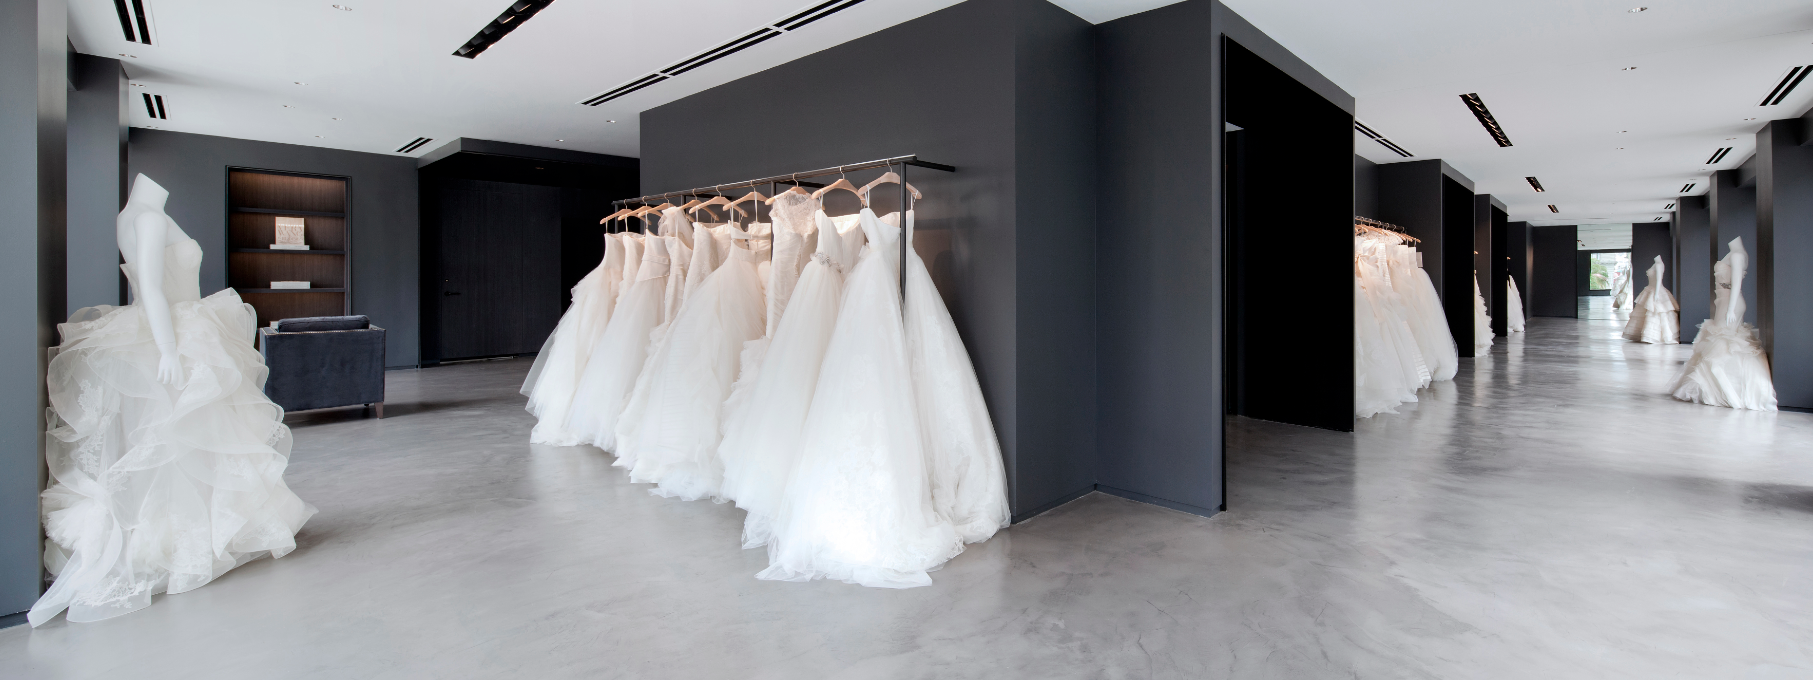 8b727d88fe220 Is it just us or are the dresses glowing?   Vera Wang Flagship ...